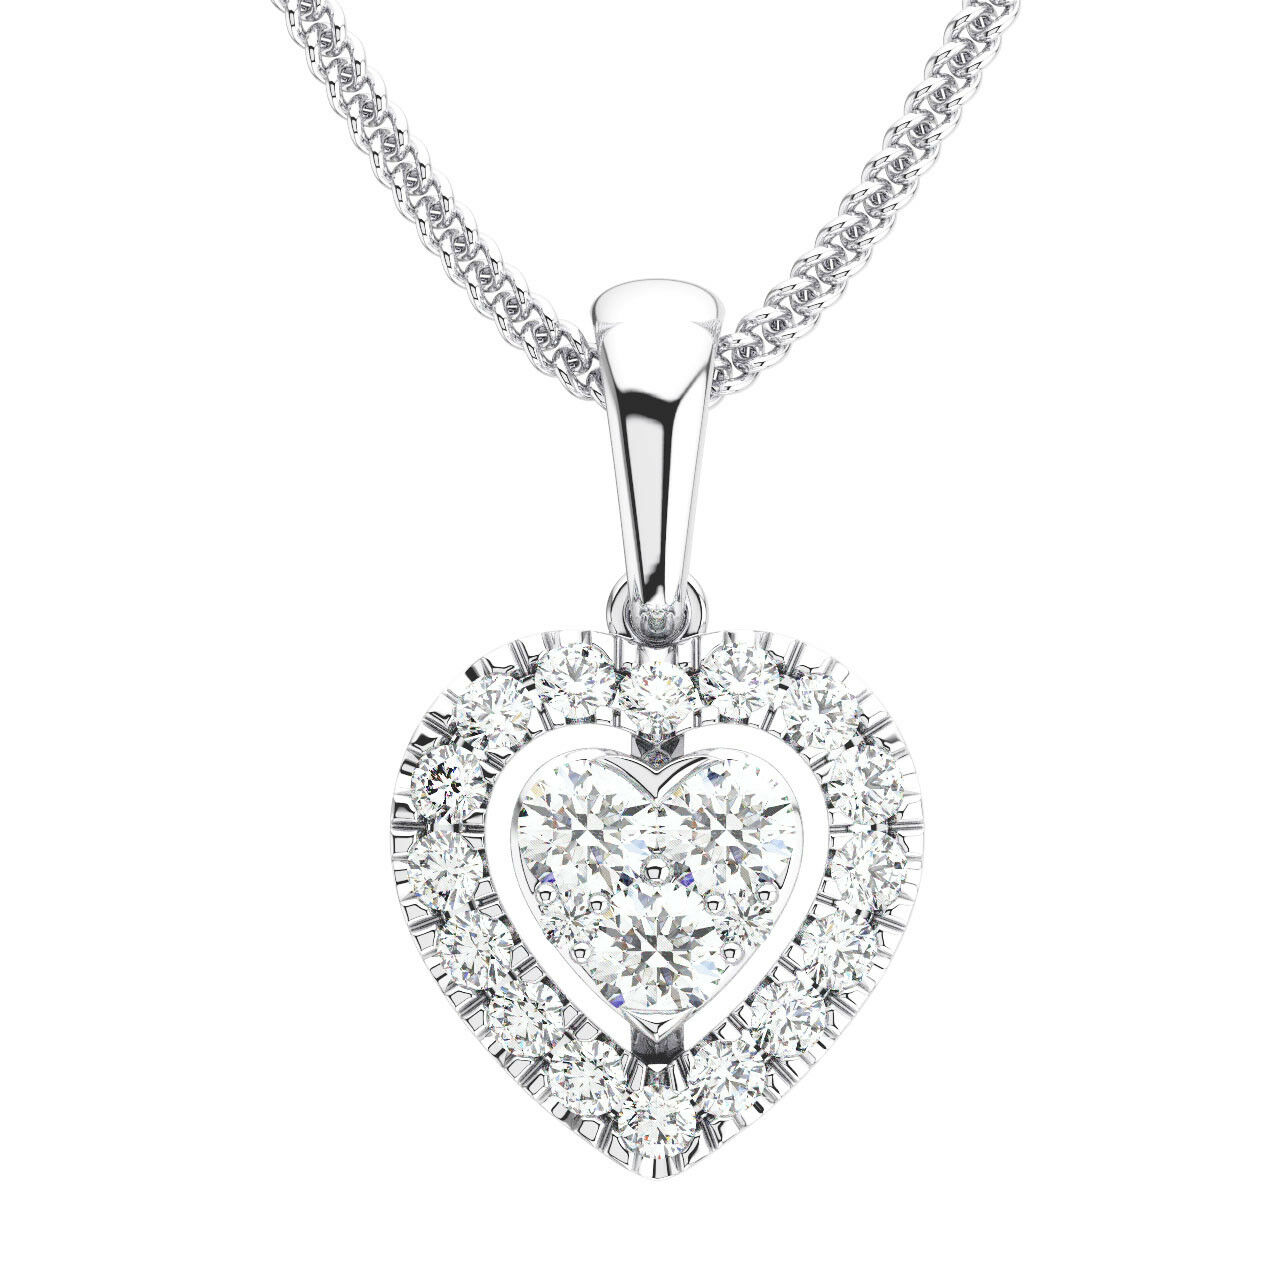 0.35 Carat Round Brilliant Cut Diamonds Pendant in Metal Platinum